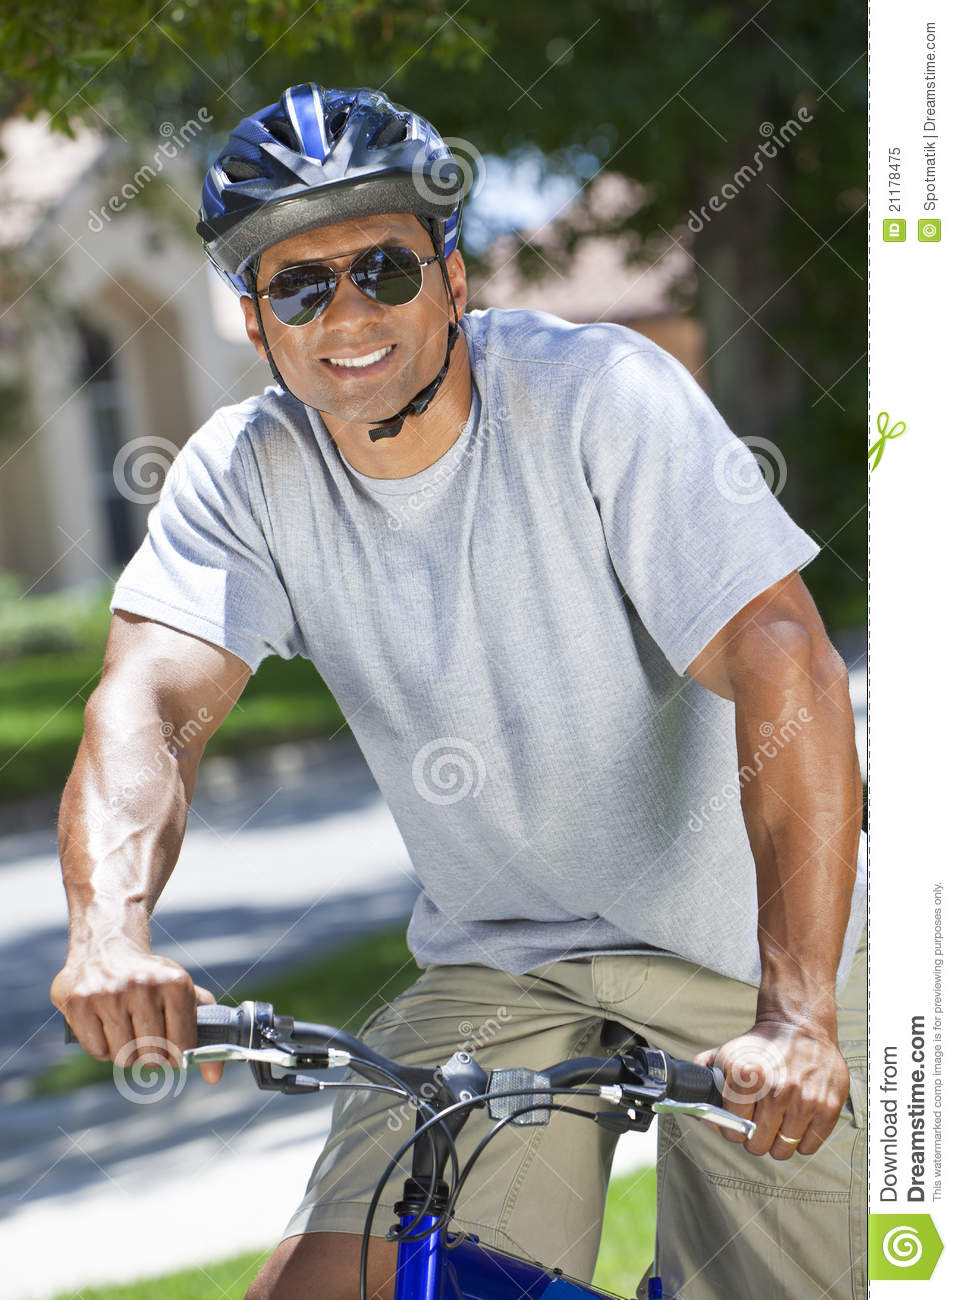 A Fit and healthy African American Man Riding Bike